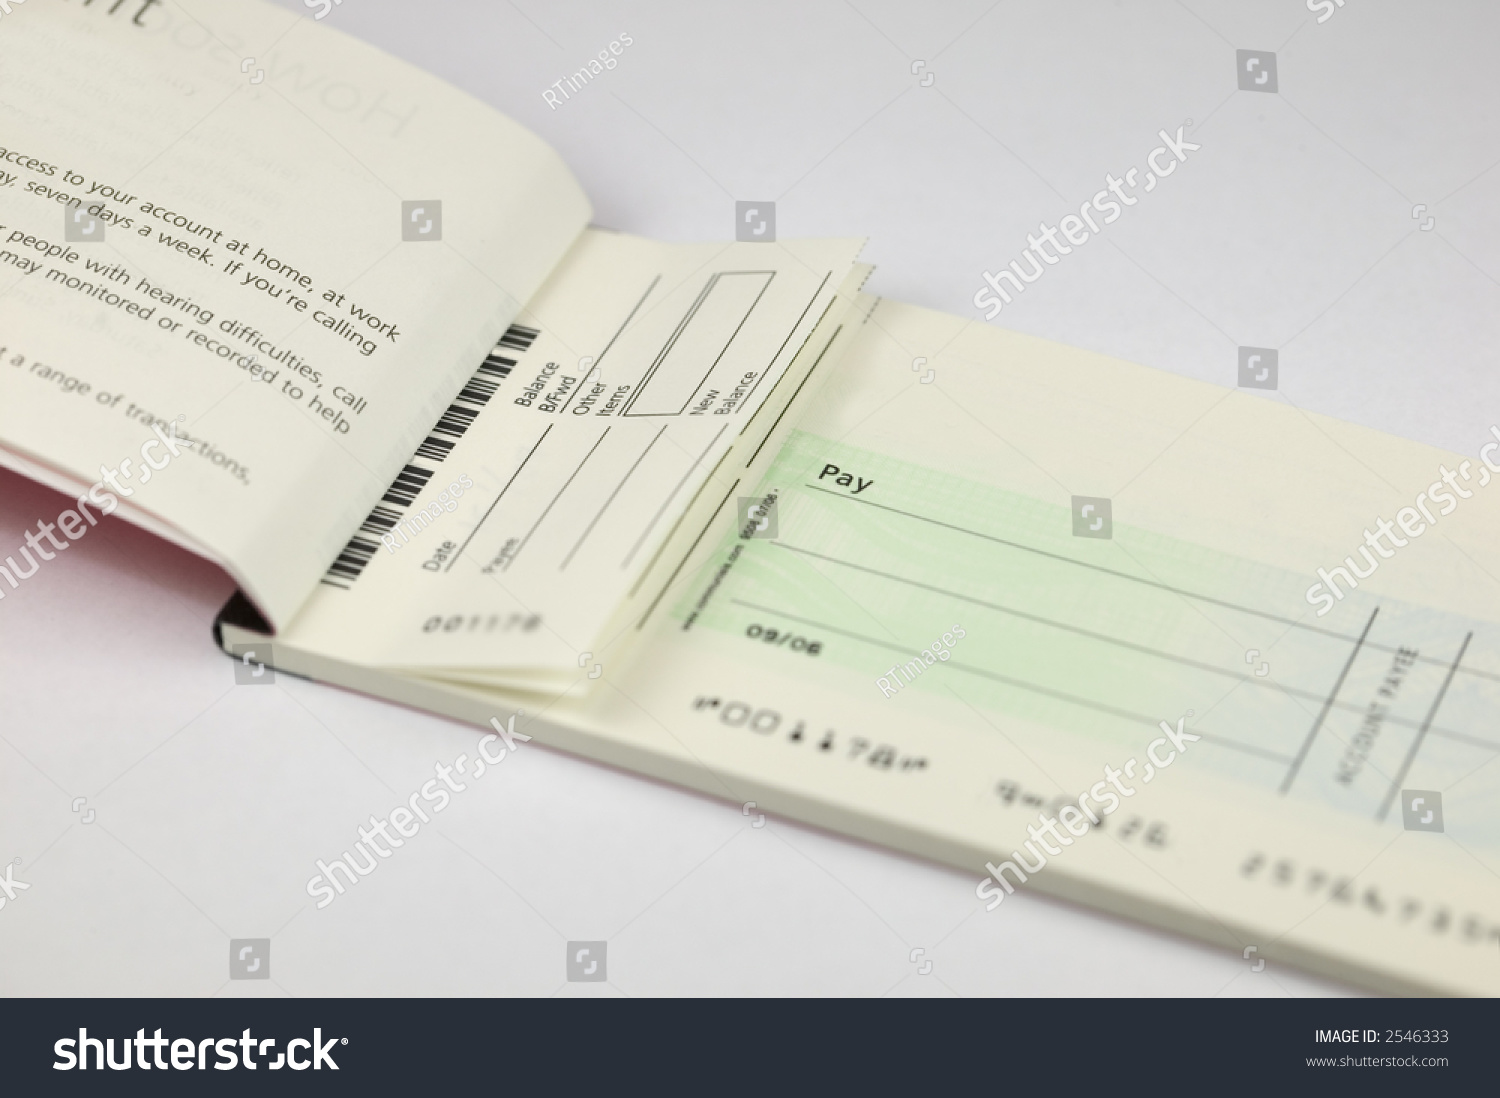 Write a cheque without a cheque book